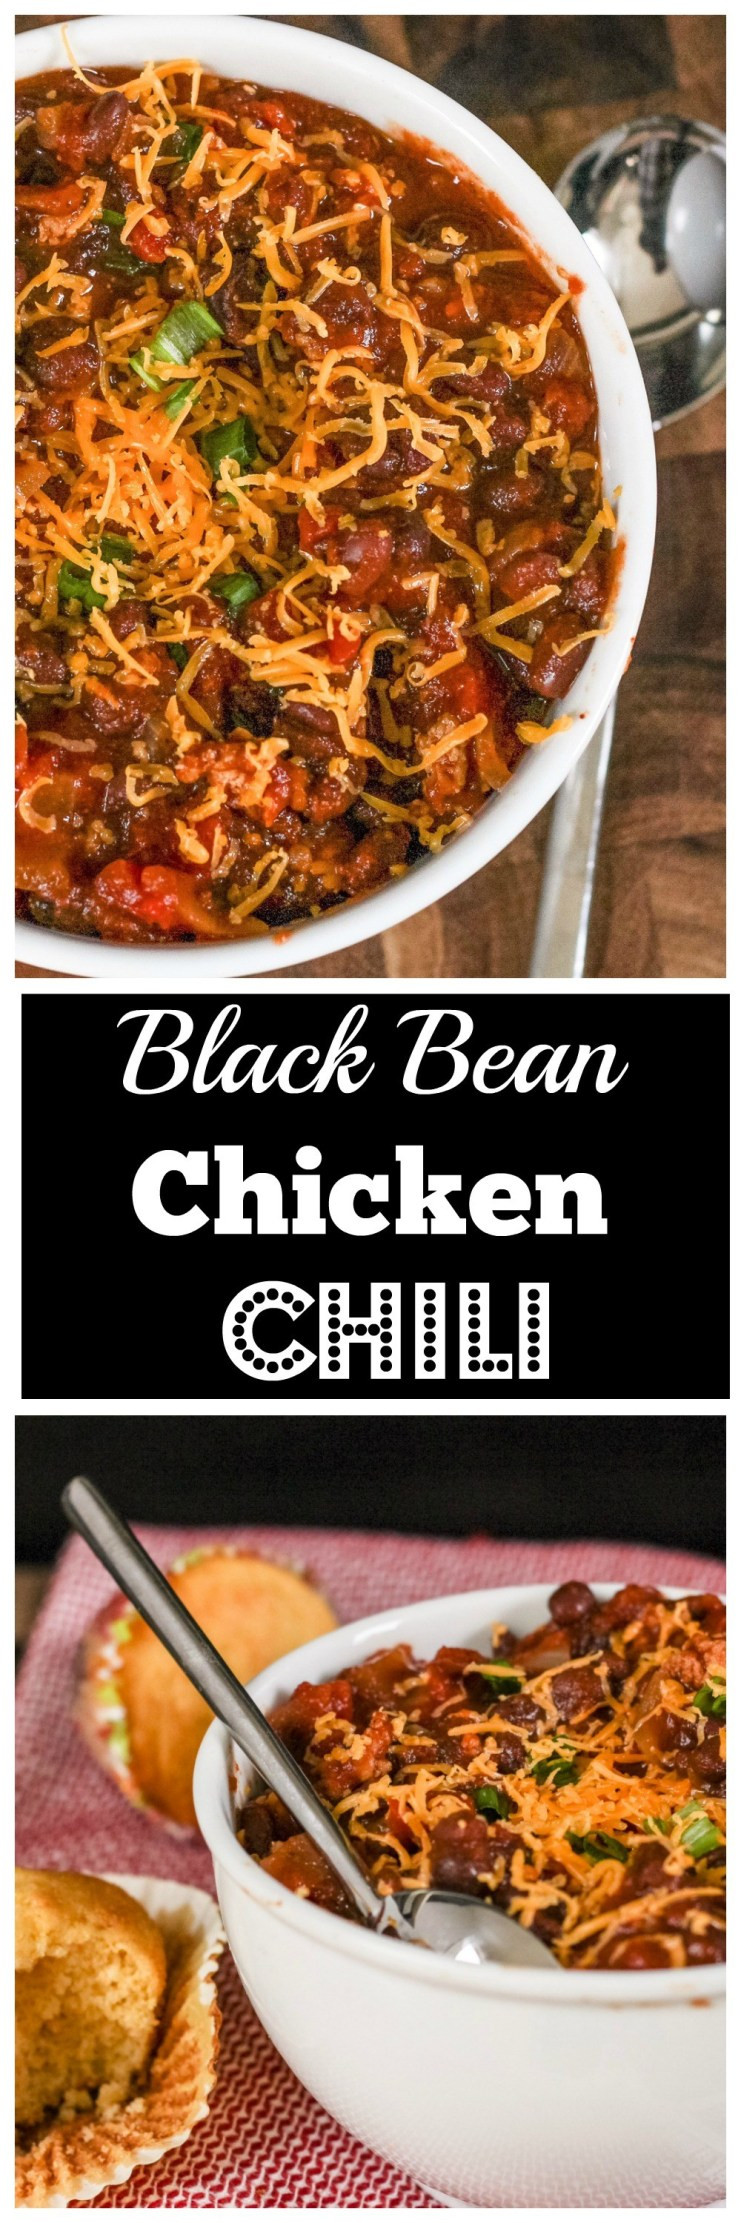 Black Bean Chicken Chili  Black Bean Chicken Chili Just a Little Bite